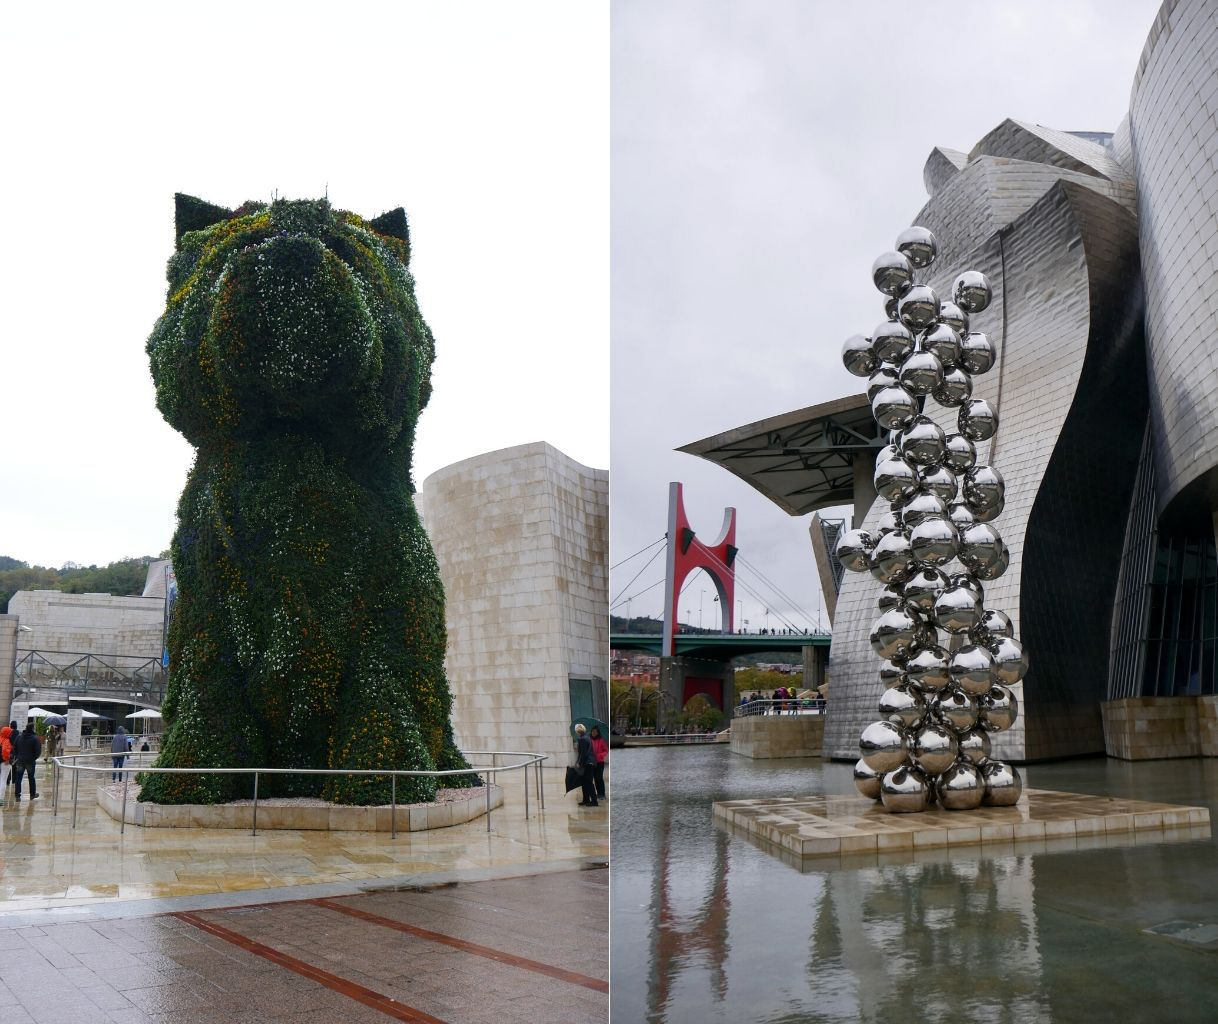 Puppy Jeff Koons et The Big Tree And The Eye Musée Guggenheim Bilbao Pays Basque Espagne